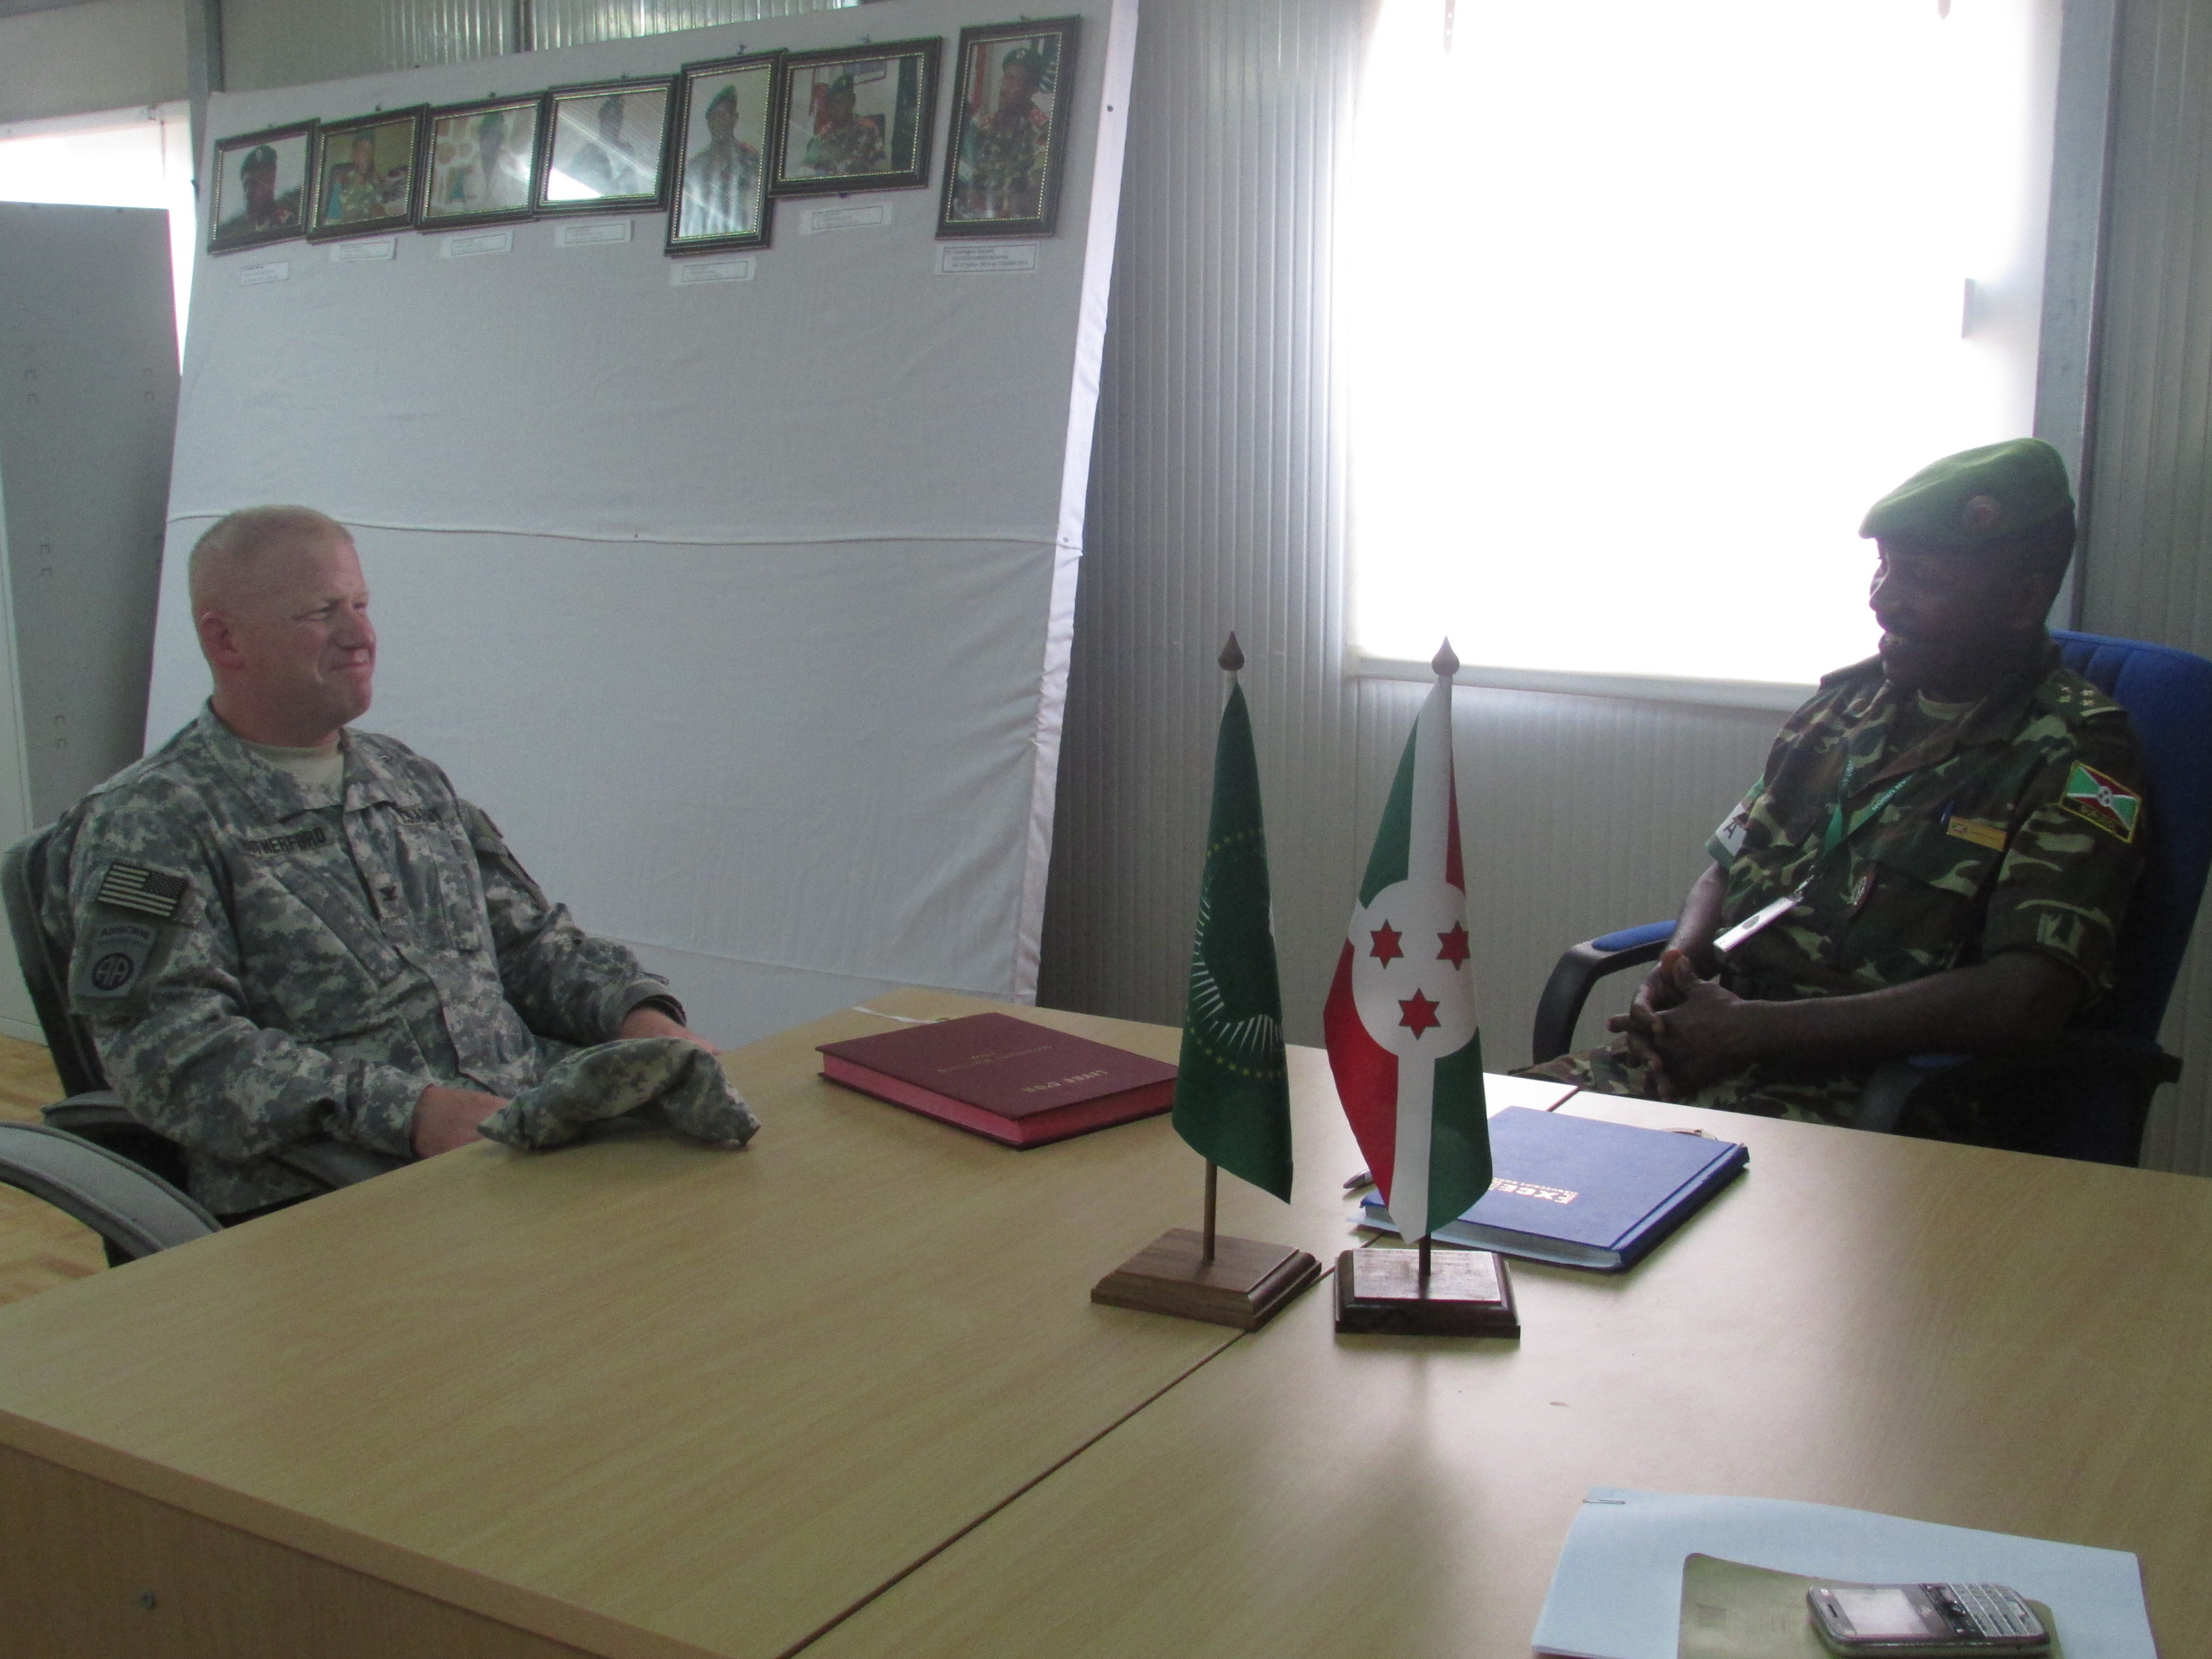 Col. Bibonimana, right, Burundi National Defense Forces, jokes with U.S. Army Col. Wilson Rutherford, U.S. Military Coordination Cell Mogadishu, during a visit to the African Union Mission in Somalia Sector 5 Headquarters located in northern Mogadishu. The MCC provides planning and advisory support to the AMISOM and Somali security forces to increase their capabilities and promote peace and security throughout Somalia and the region. (BNDF Courtesy Photo)